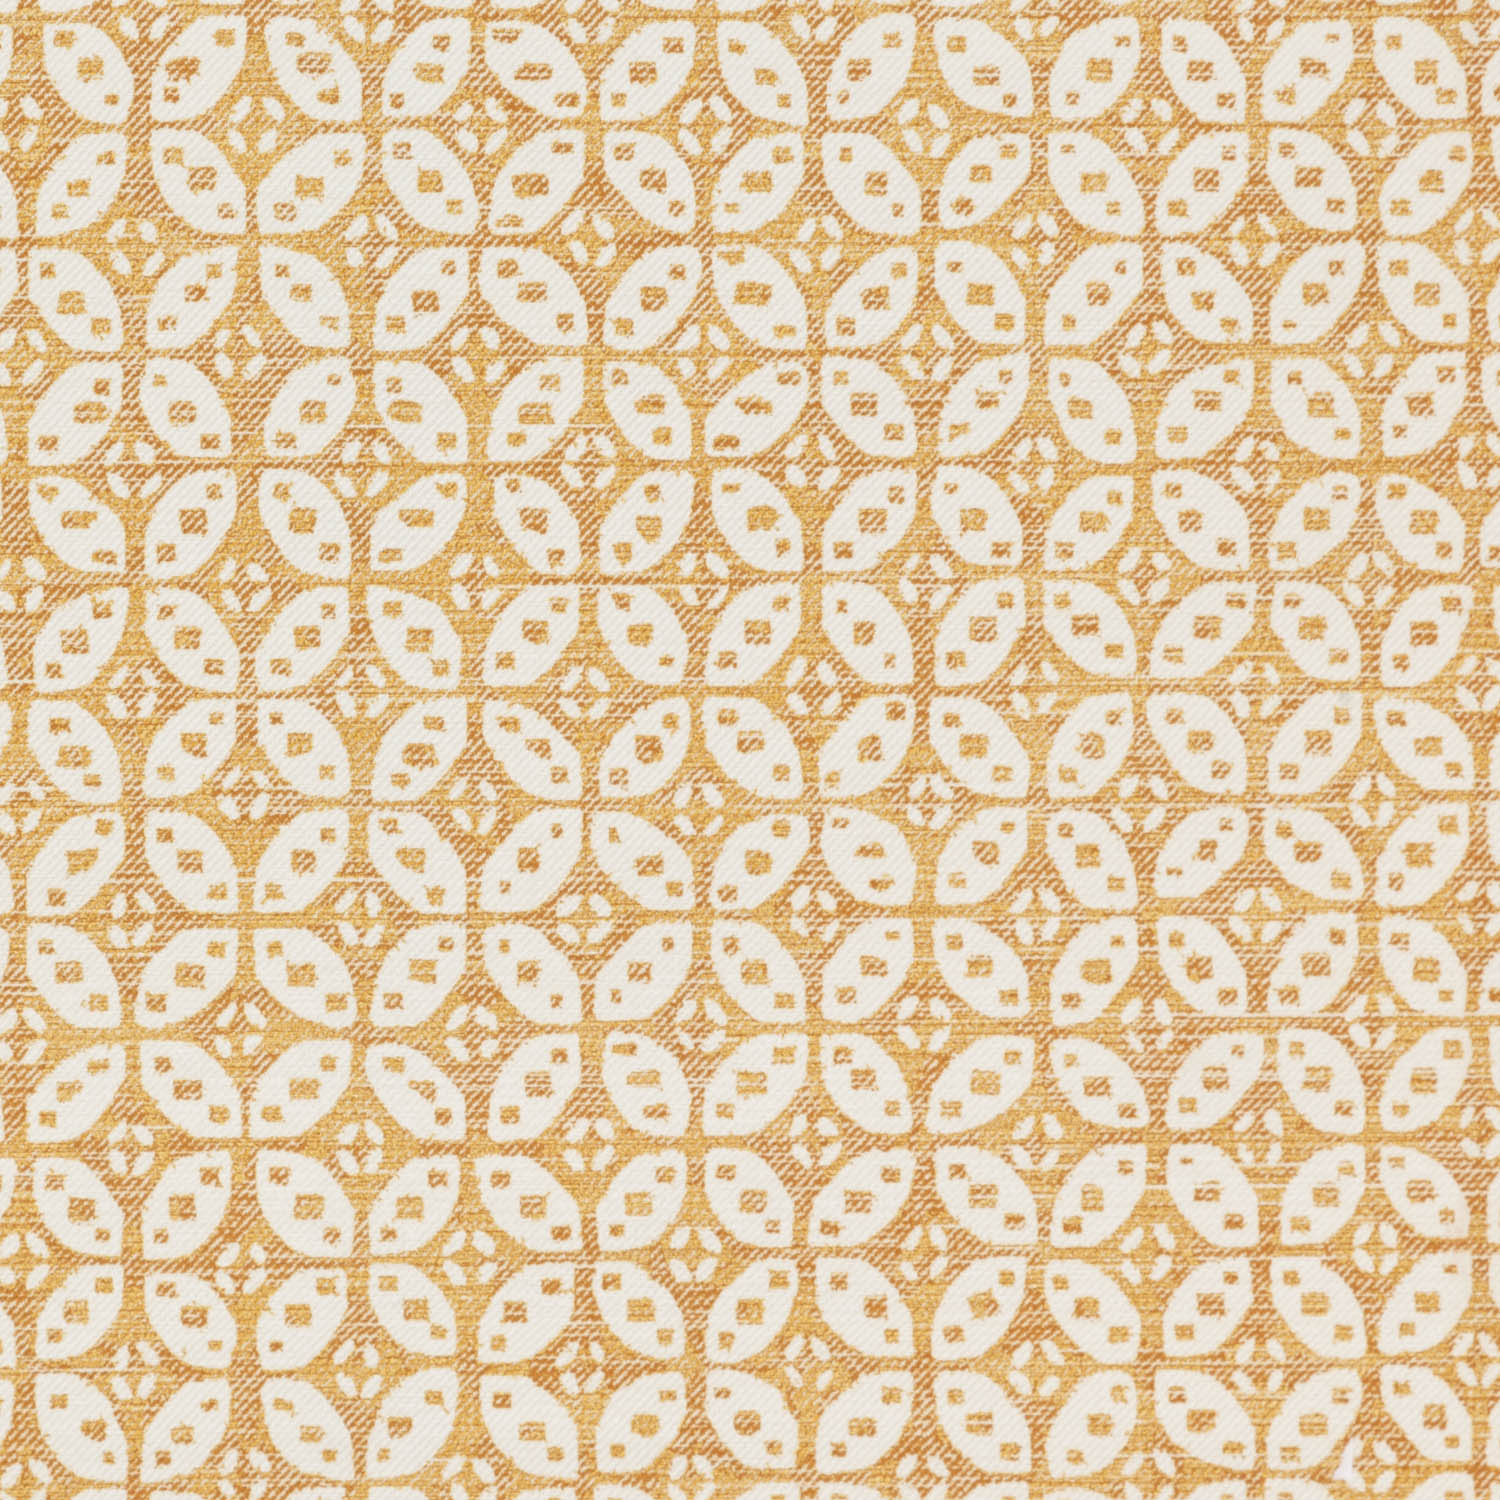 hamb-003-yellow-hamble-cotton-1